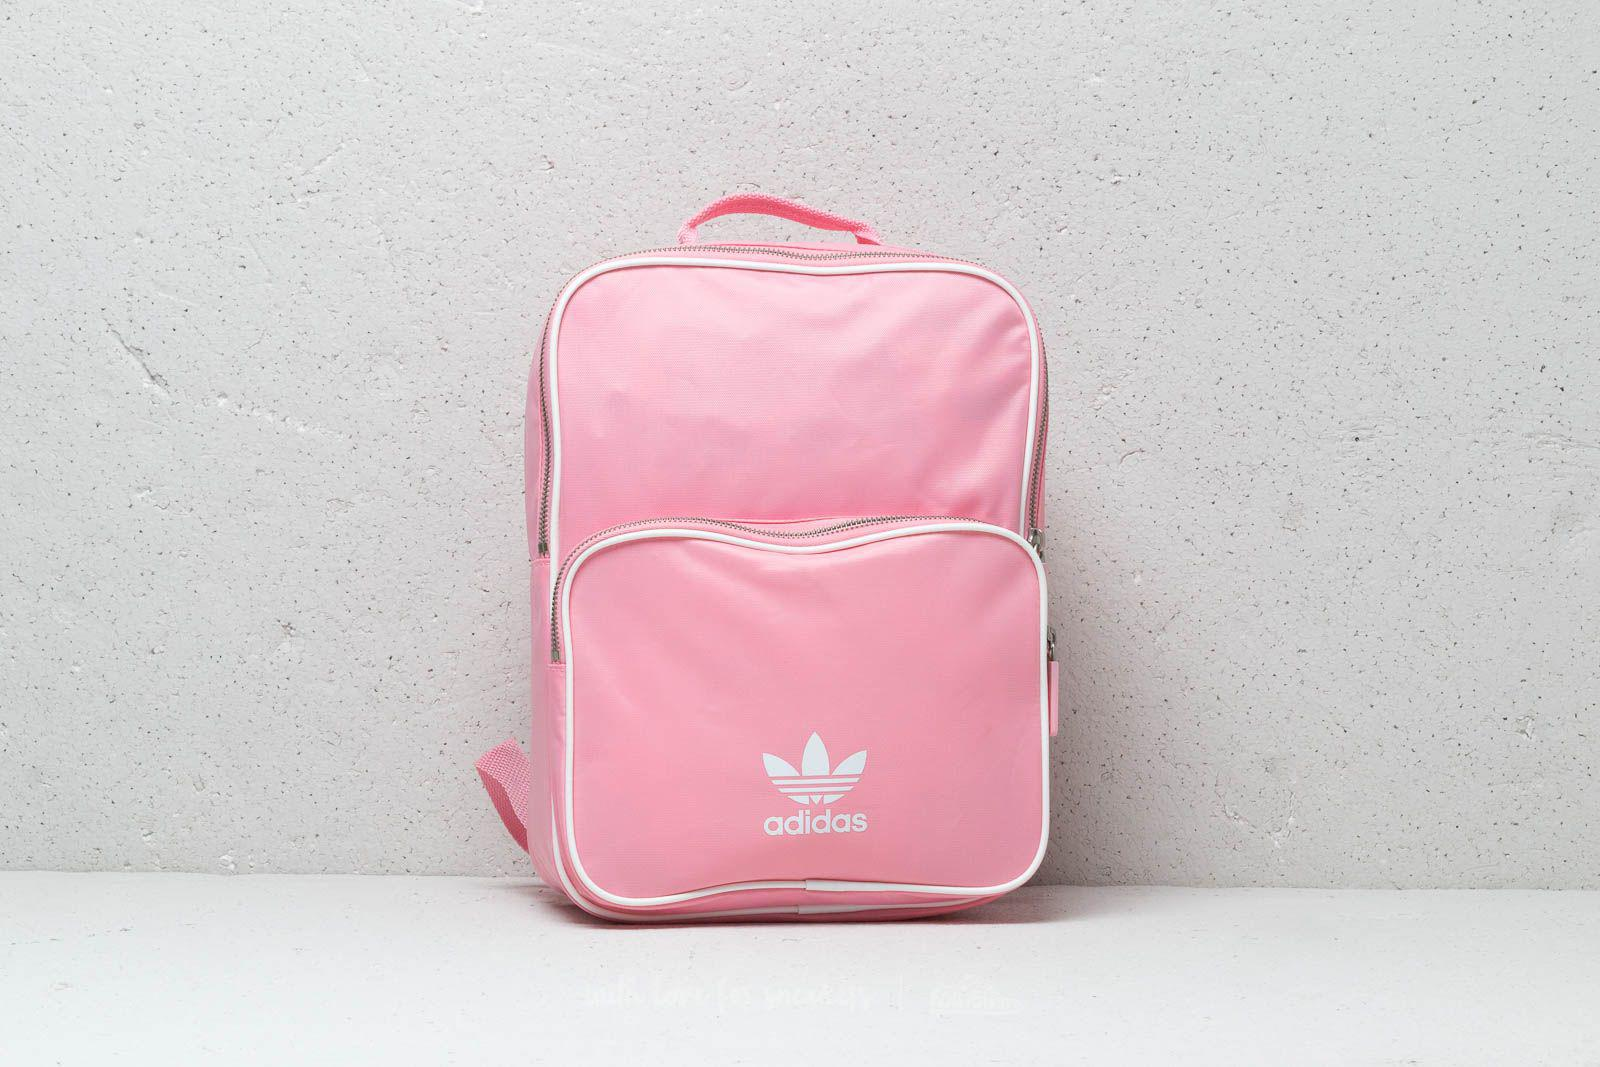 78a634a2027f Adidas originals womens adidas classic adicolor medium backpack light pink  jpg 1600x1067 Light pink back pack